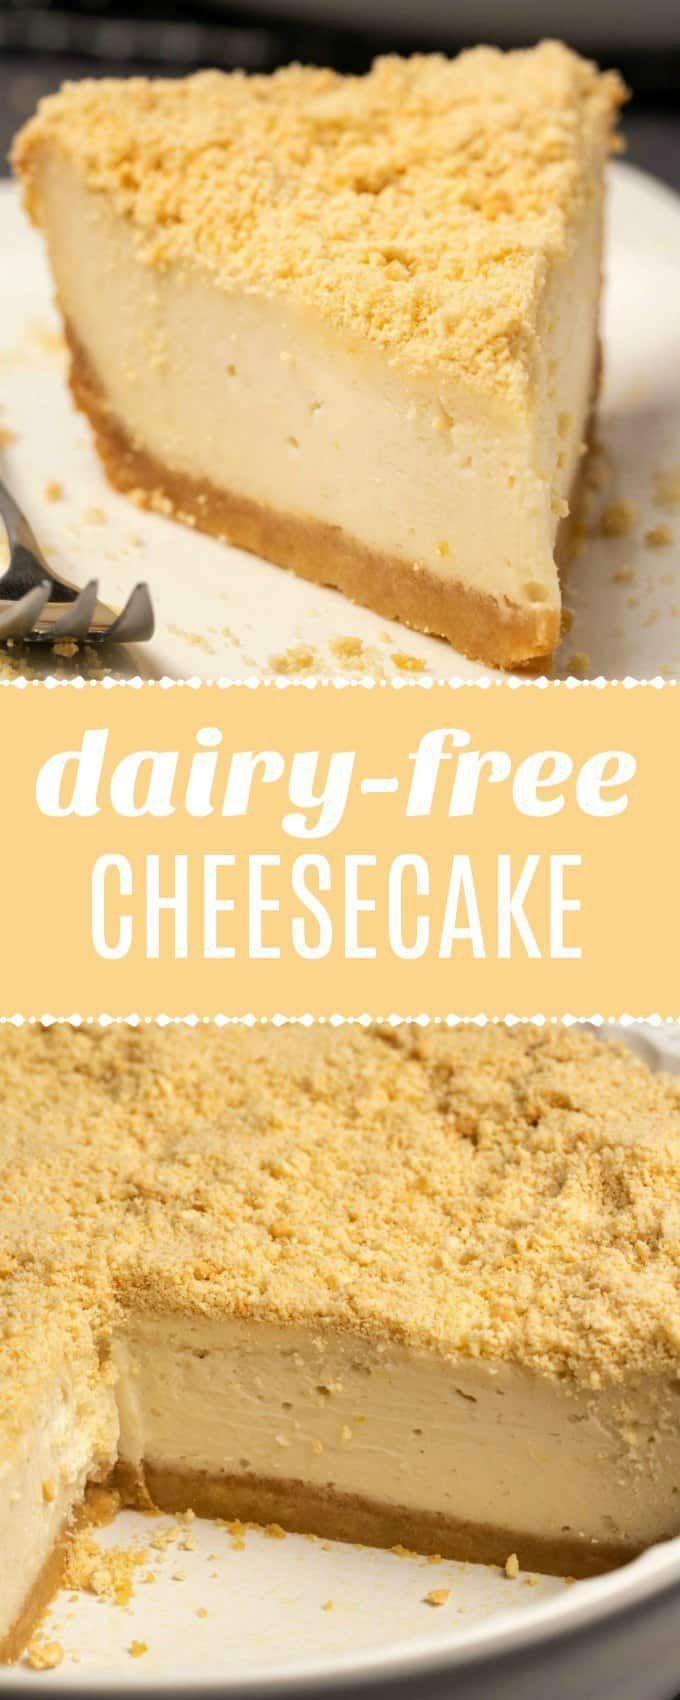 This baked dairy free cheesecake is just as good or better than any baked cheese #dairyfreesmoothie